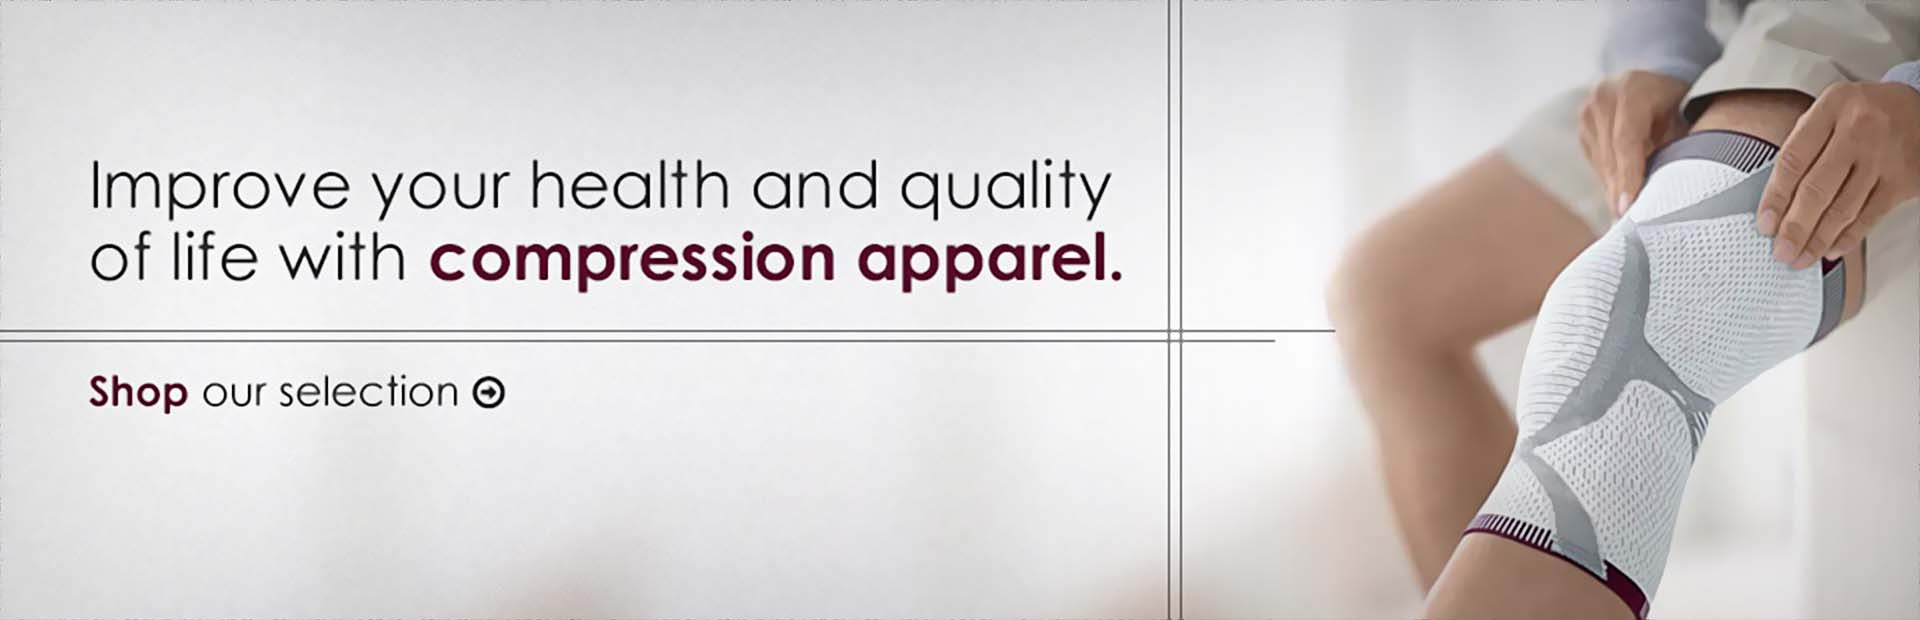 Improve your health and quality of life with compression apparel.